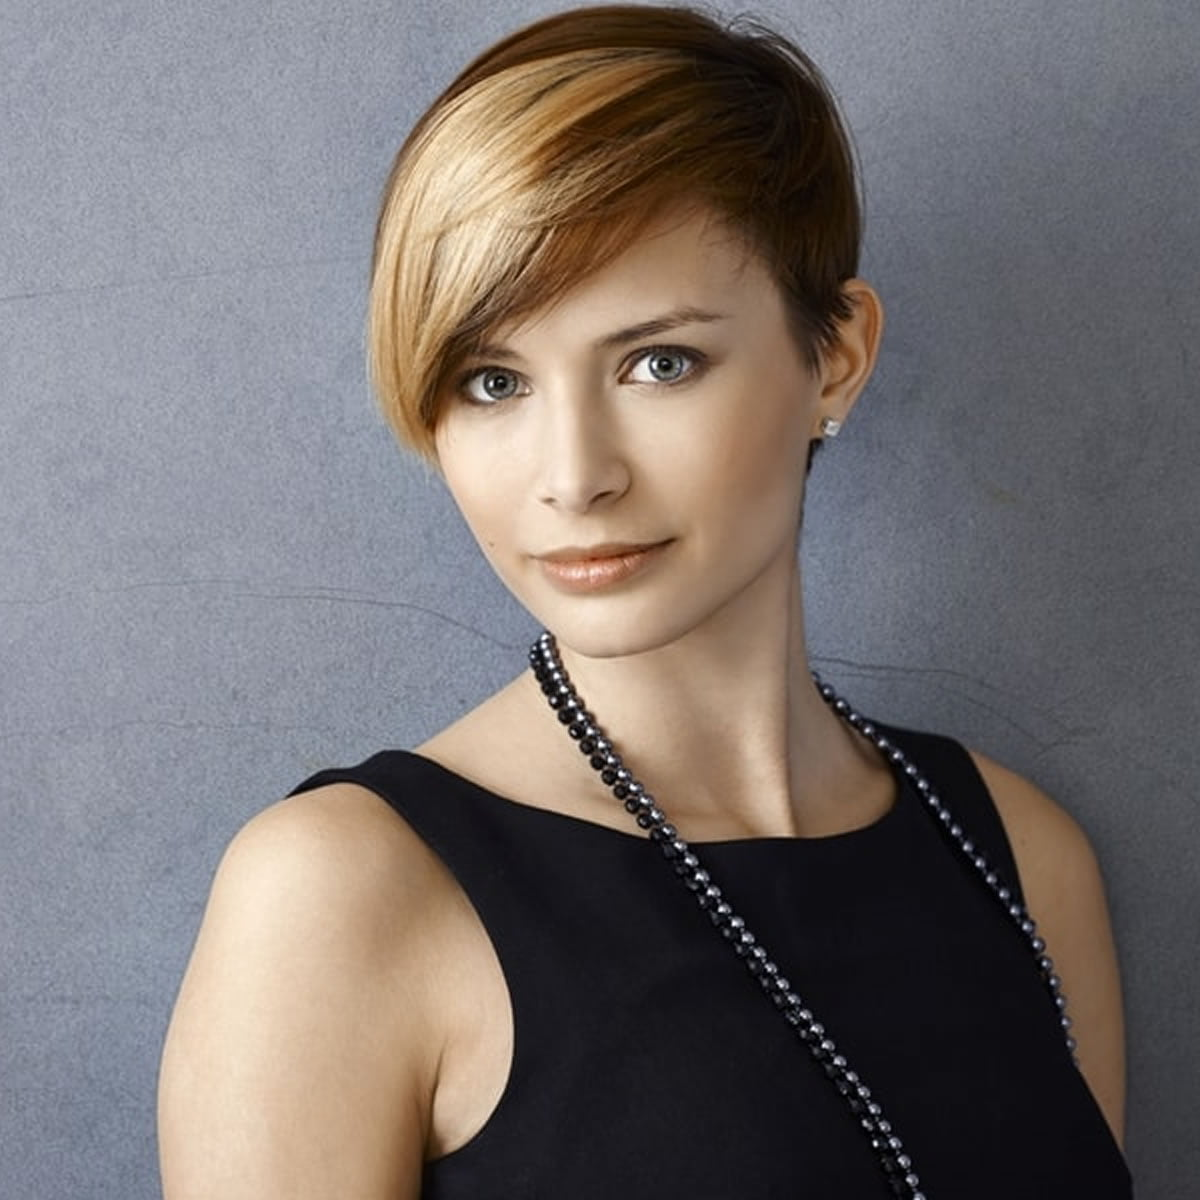 Hairstyles For Woman: Pixie Haircuts For Business Women